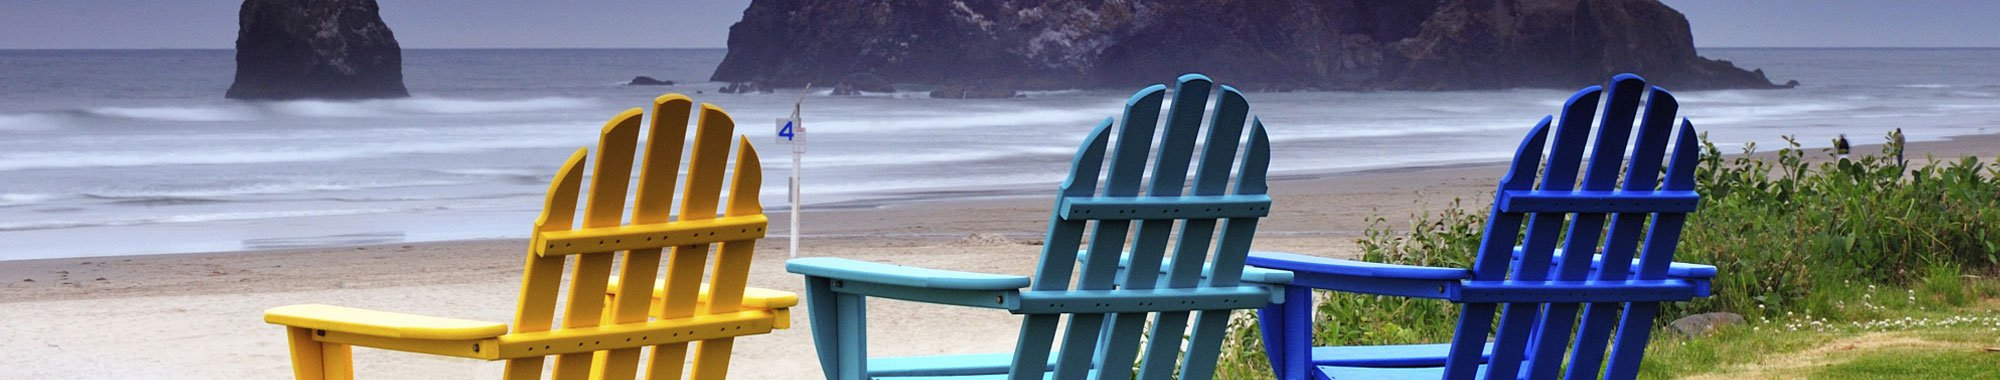 Search Oregon Coast Vacation Rentals